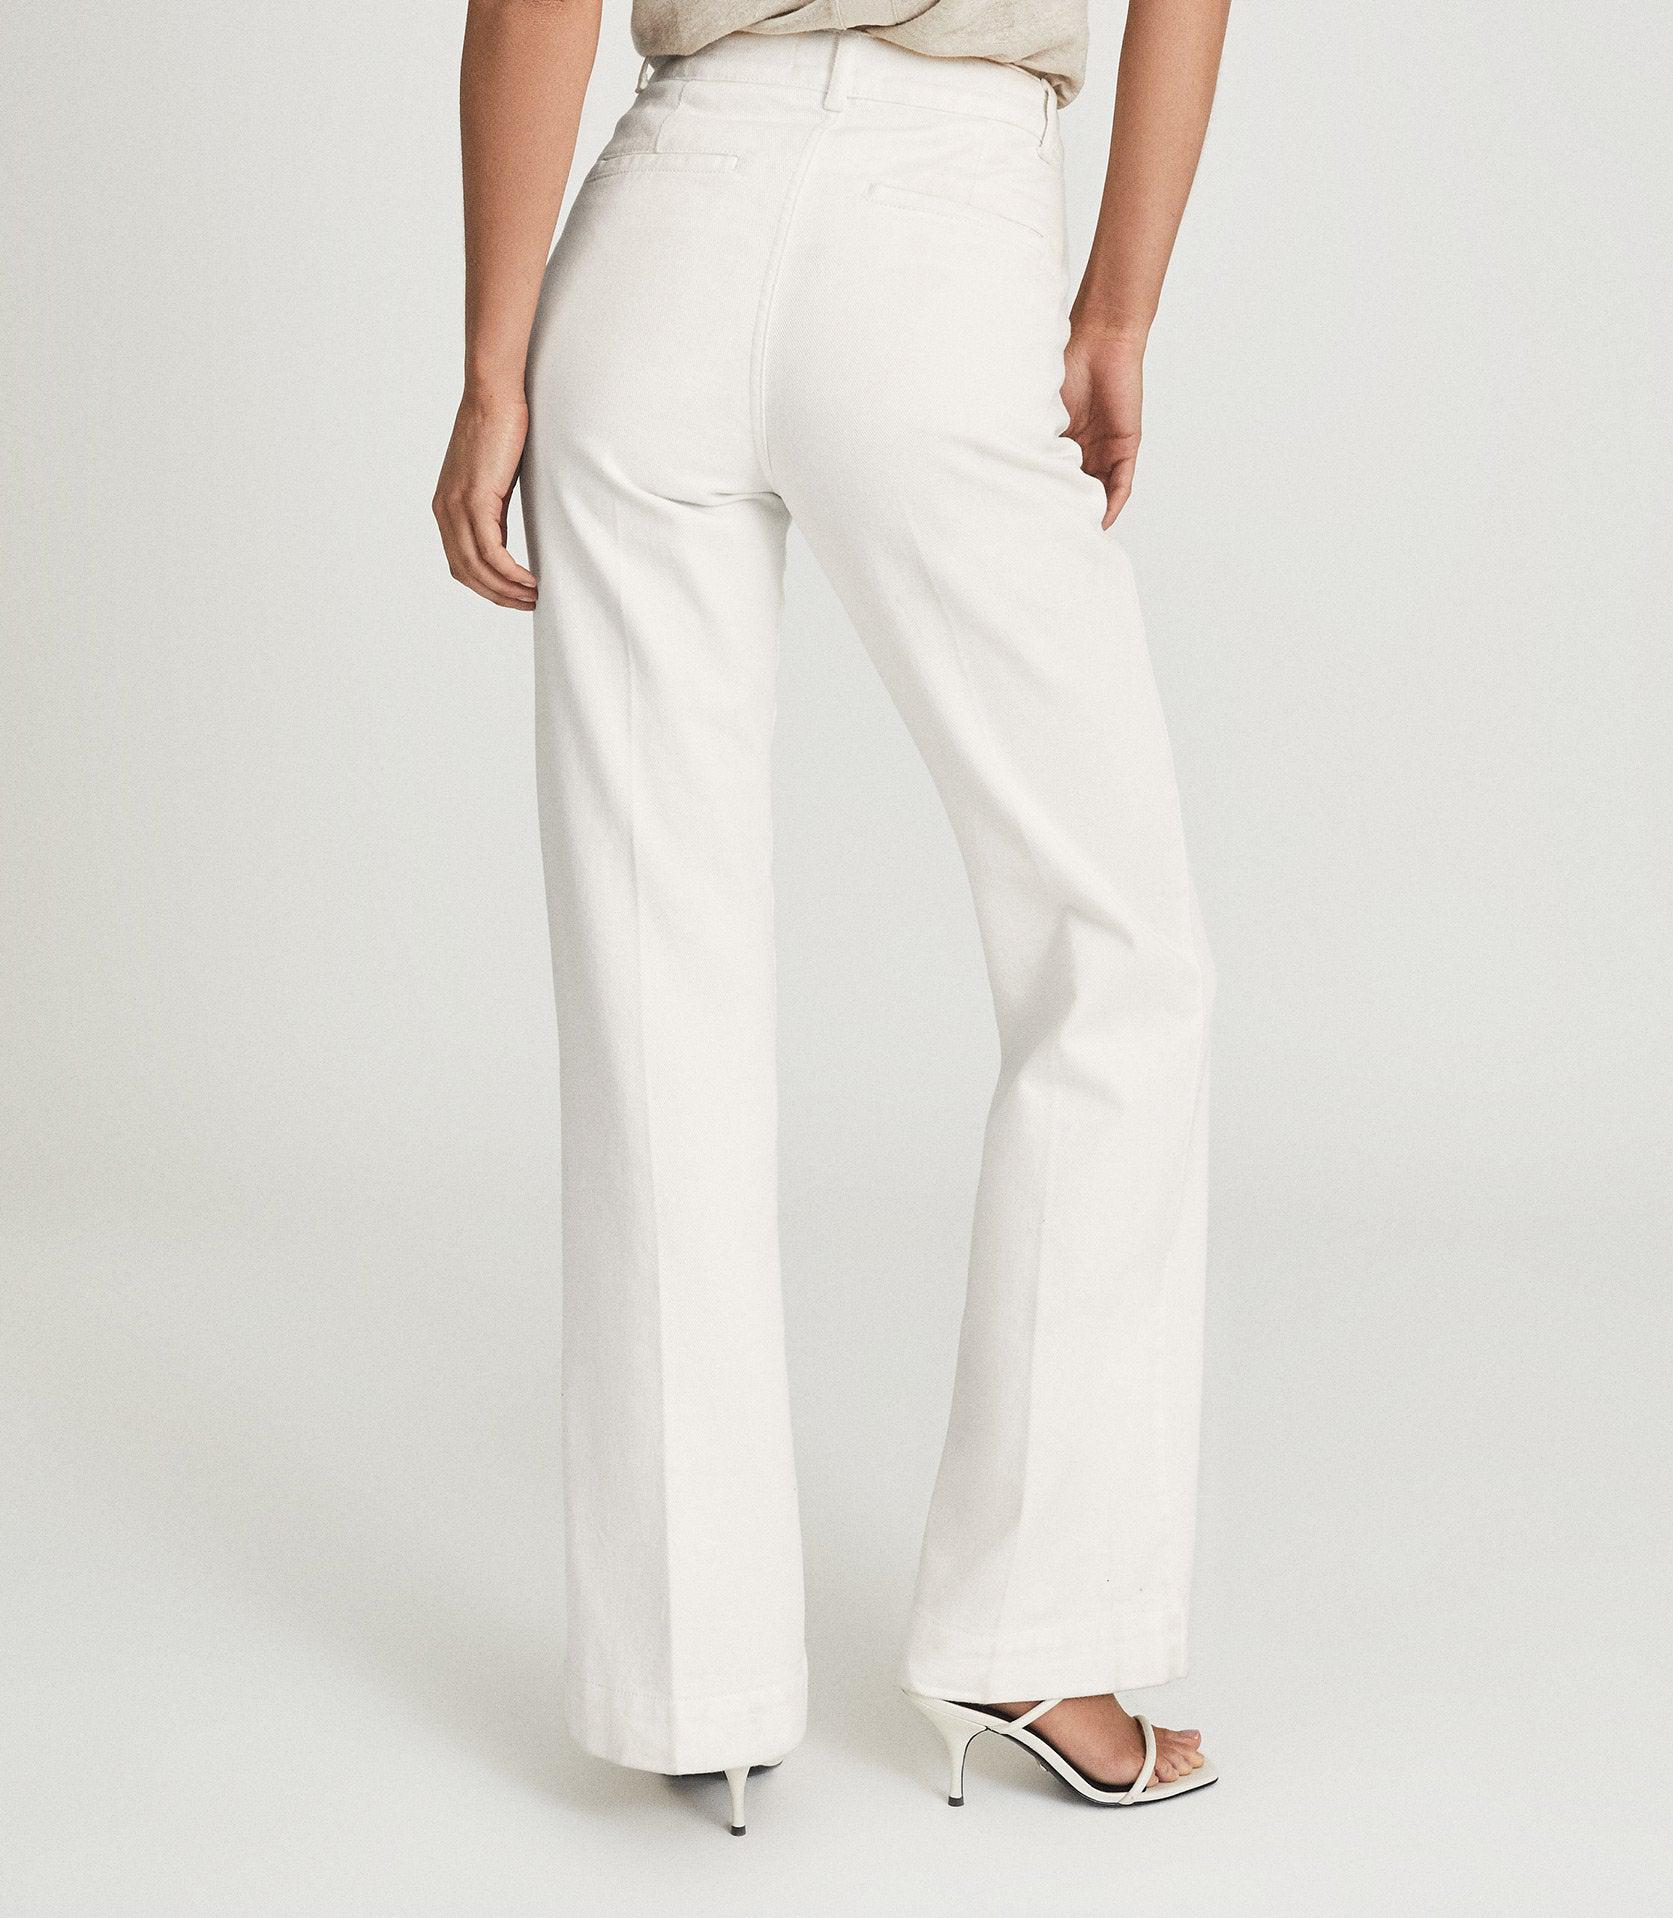 ISA - HIGH RISE FLARED JEANS 4